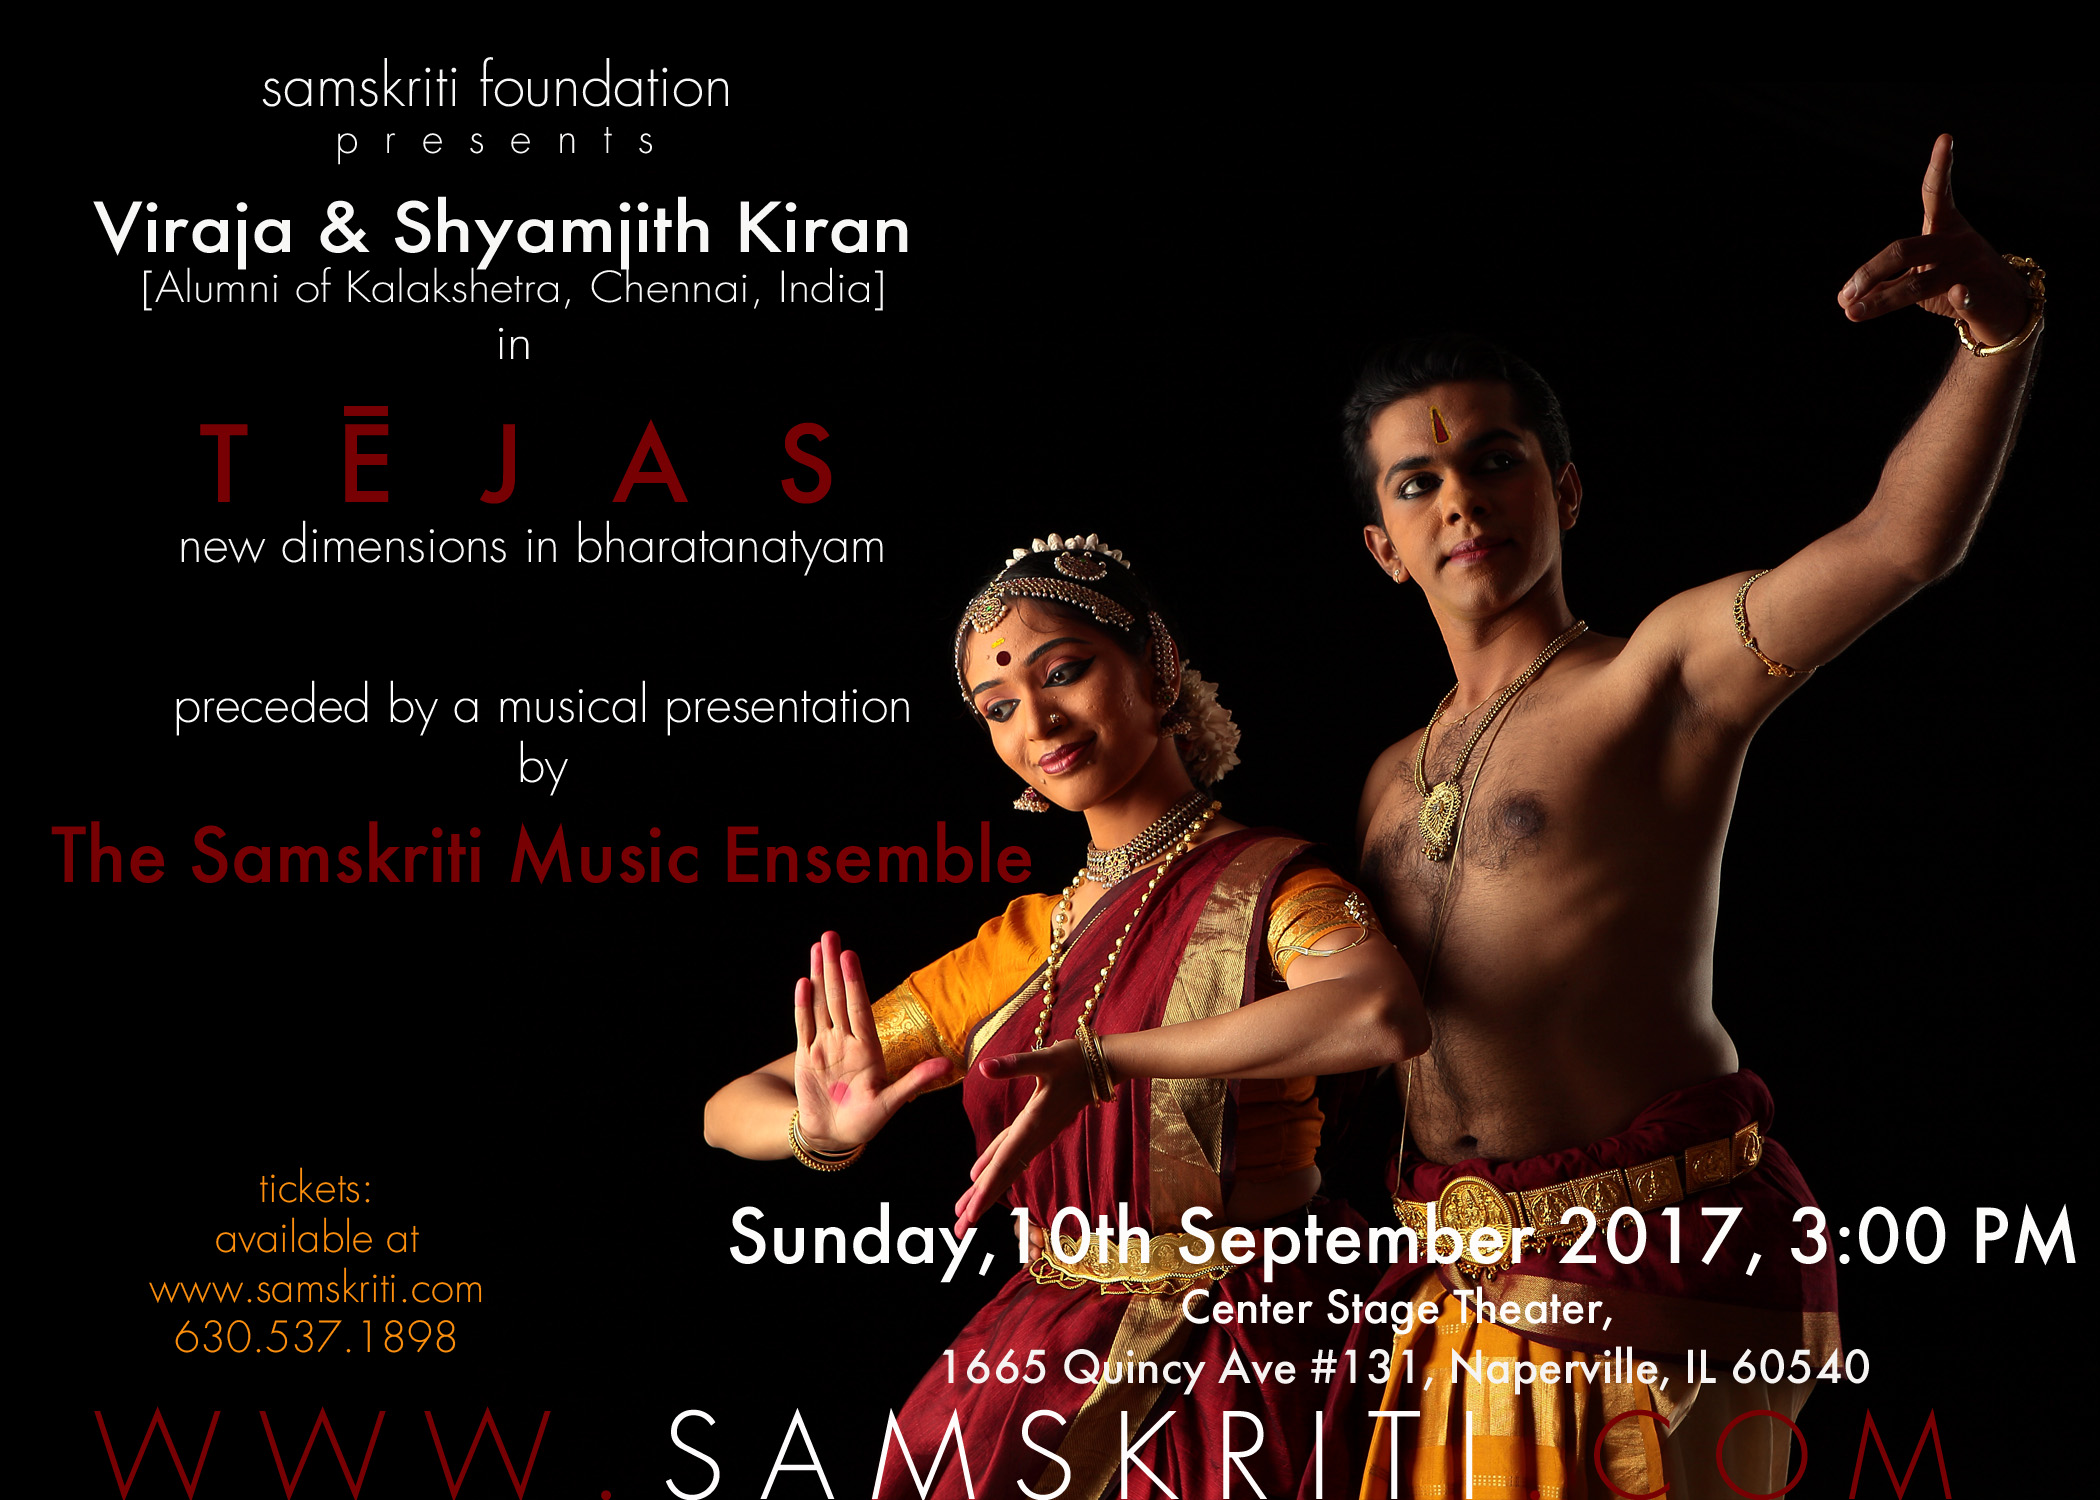 TEJAS - new dimensions in Bharatanatyam